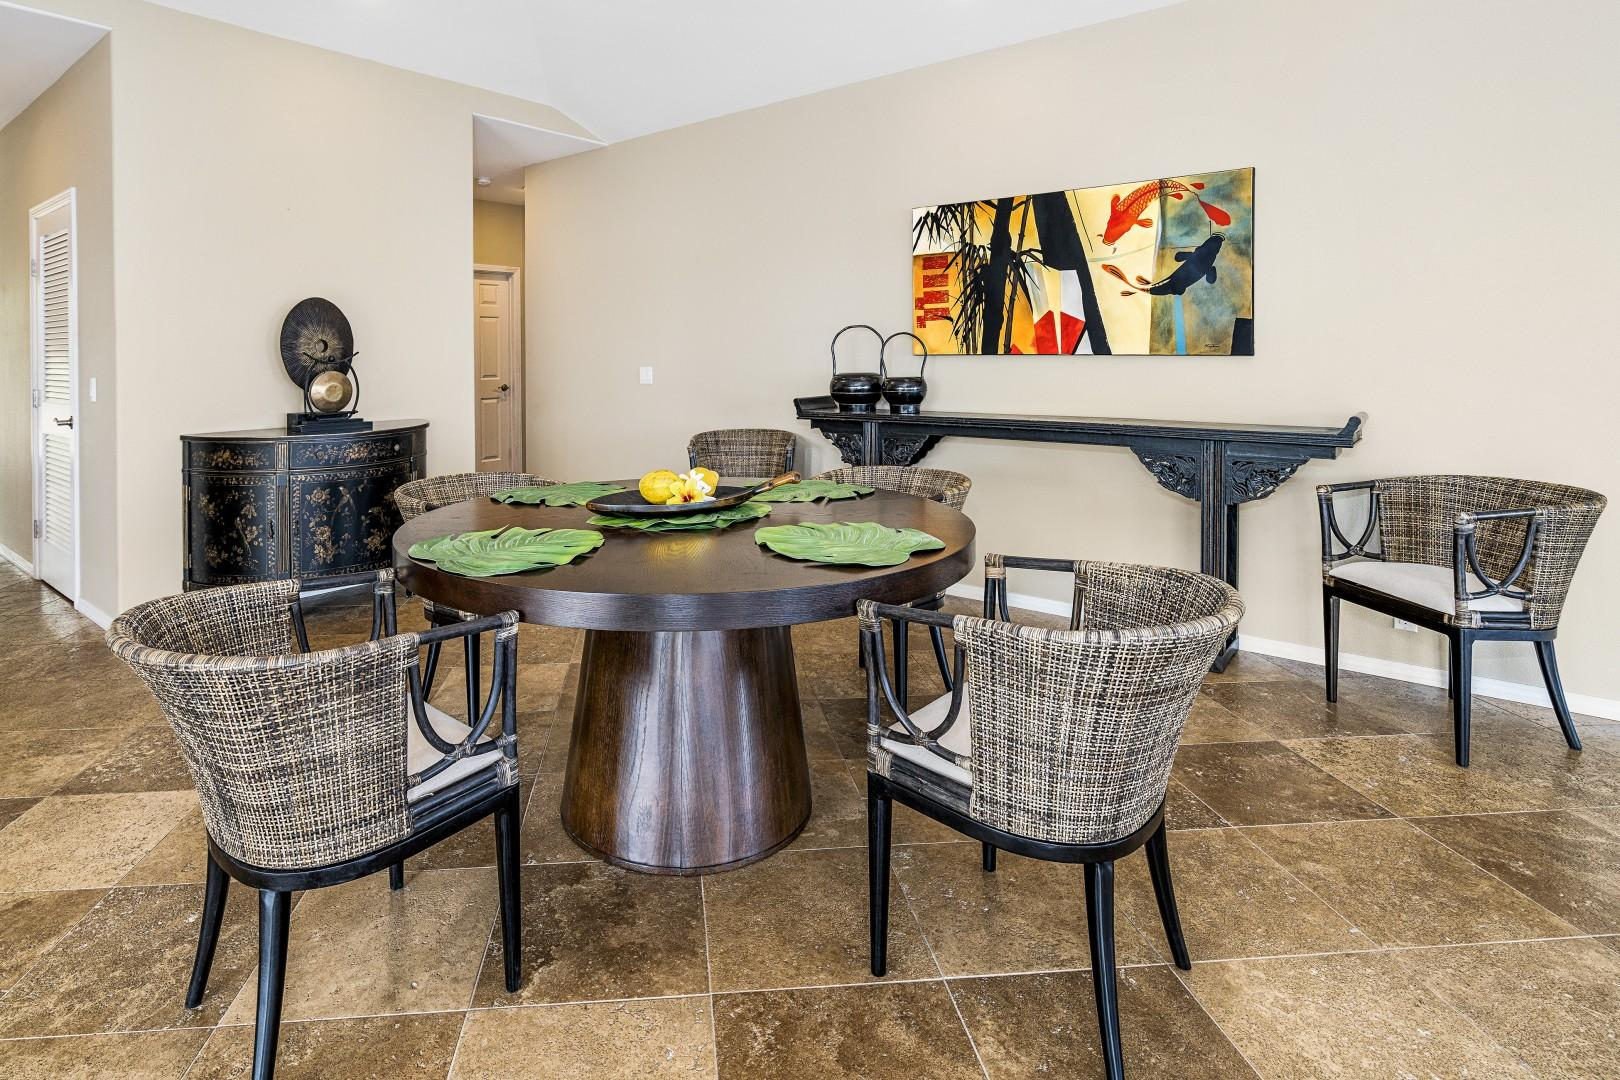 Indoor dining for up to 6 guests!